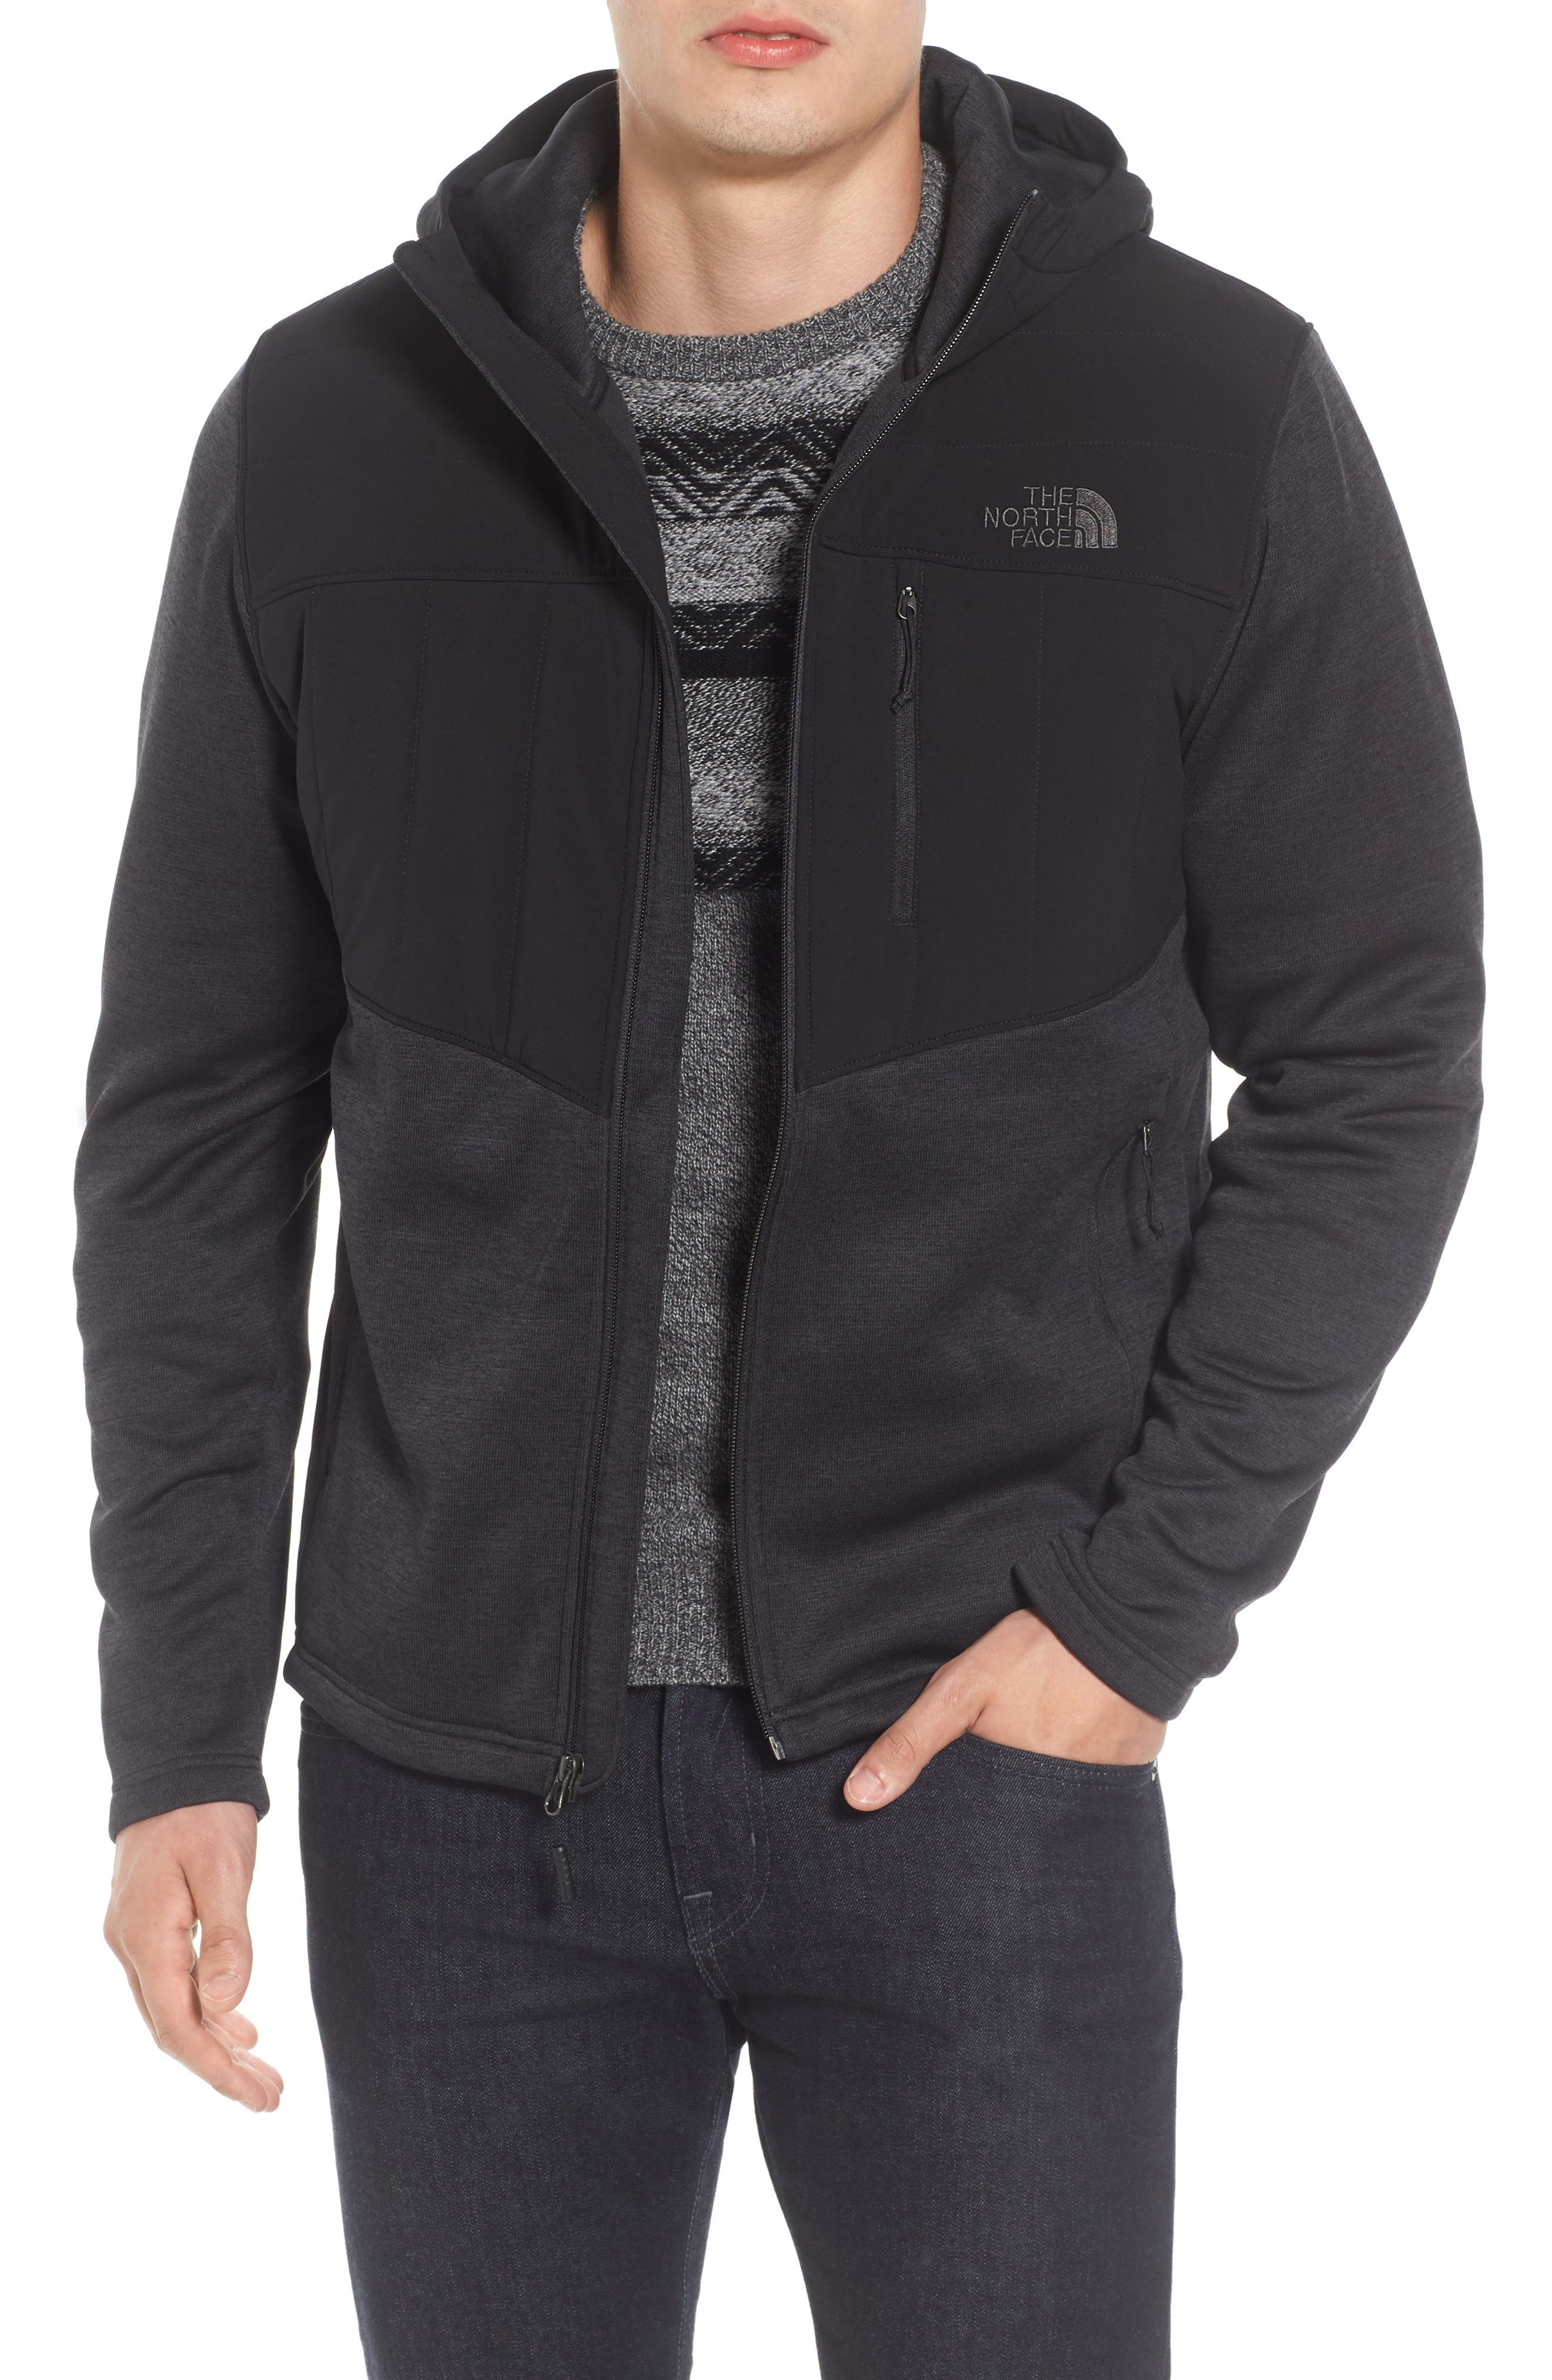 Norris Insulated Fleece Jacket,                             Main thumbnail 1, color,                             Tnf Black Heather/Tnf Black